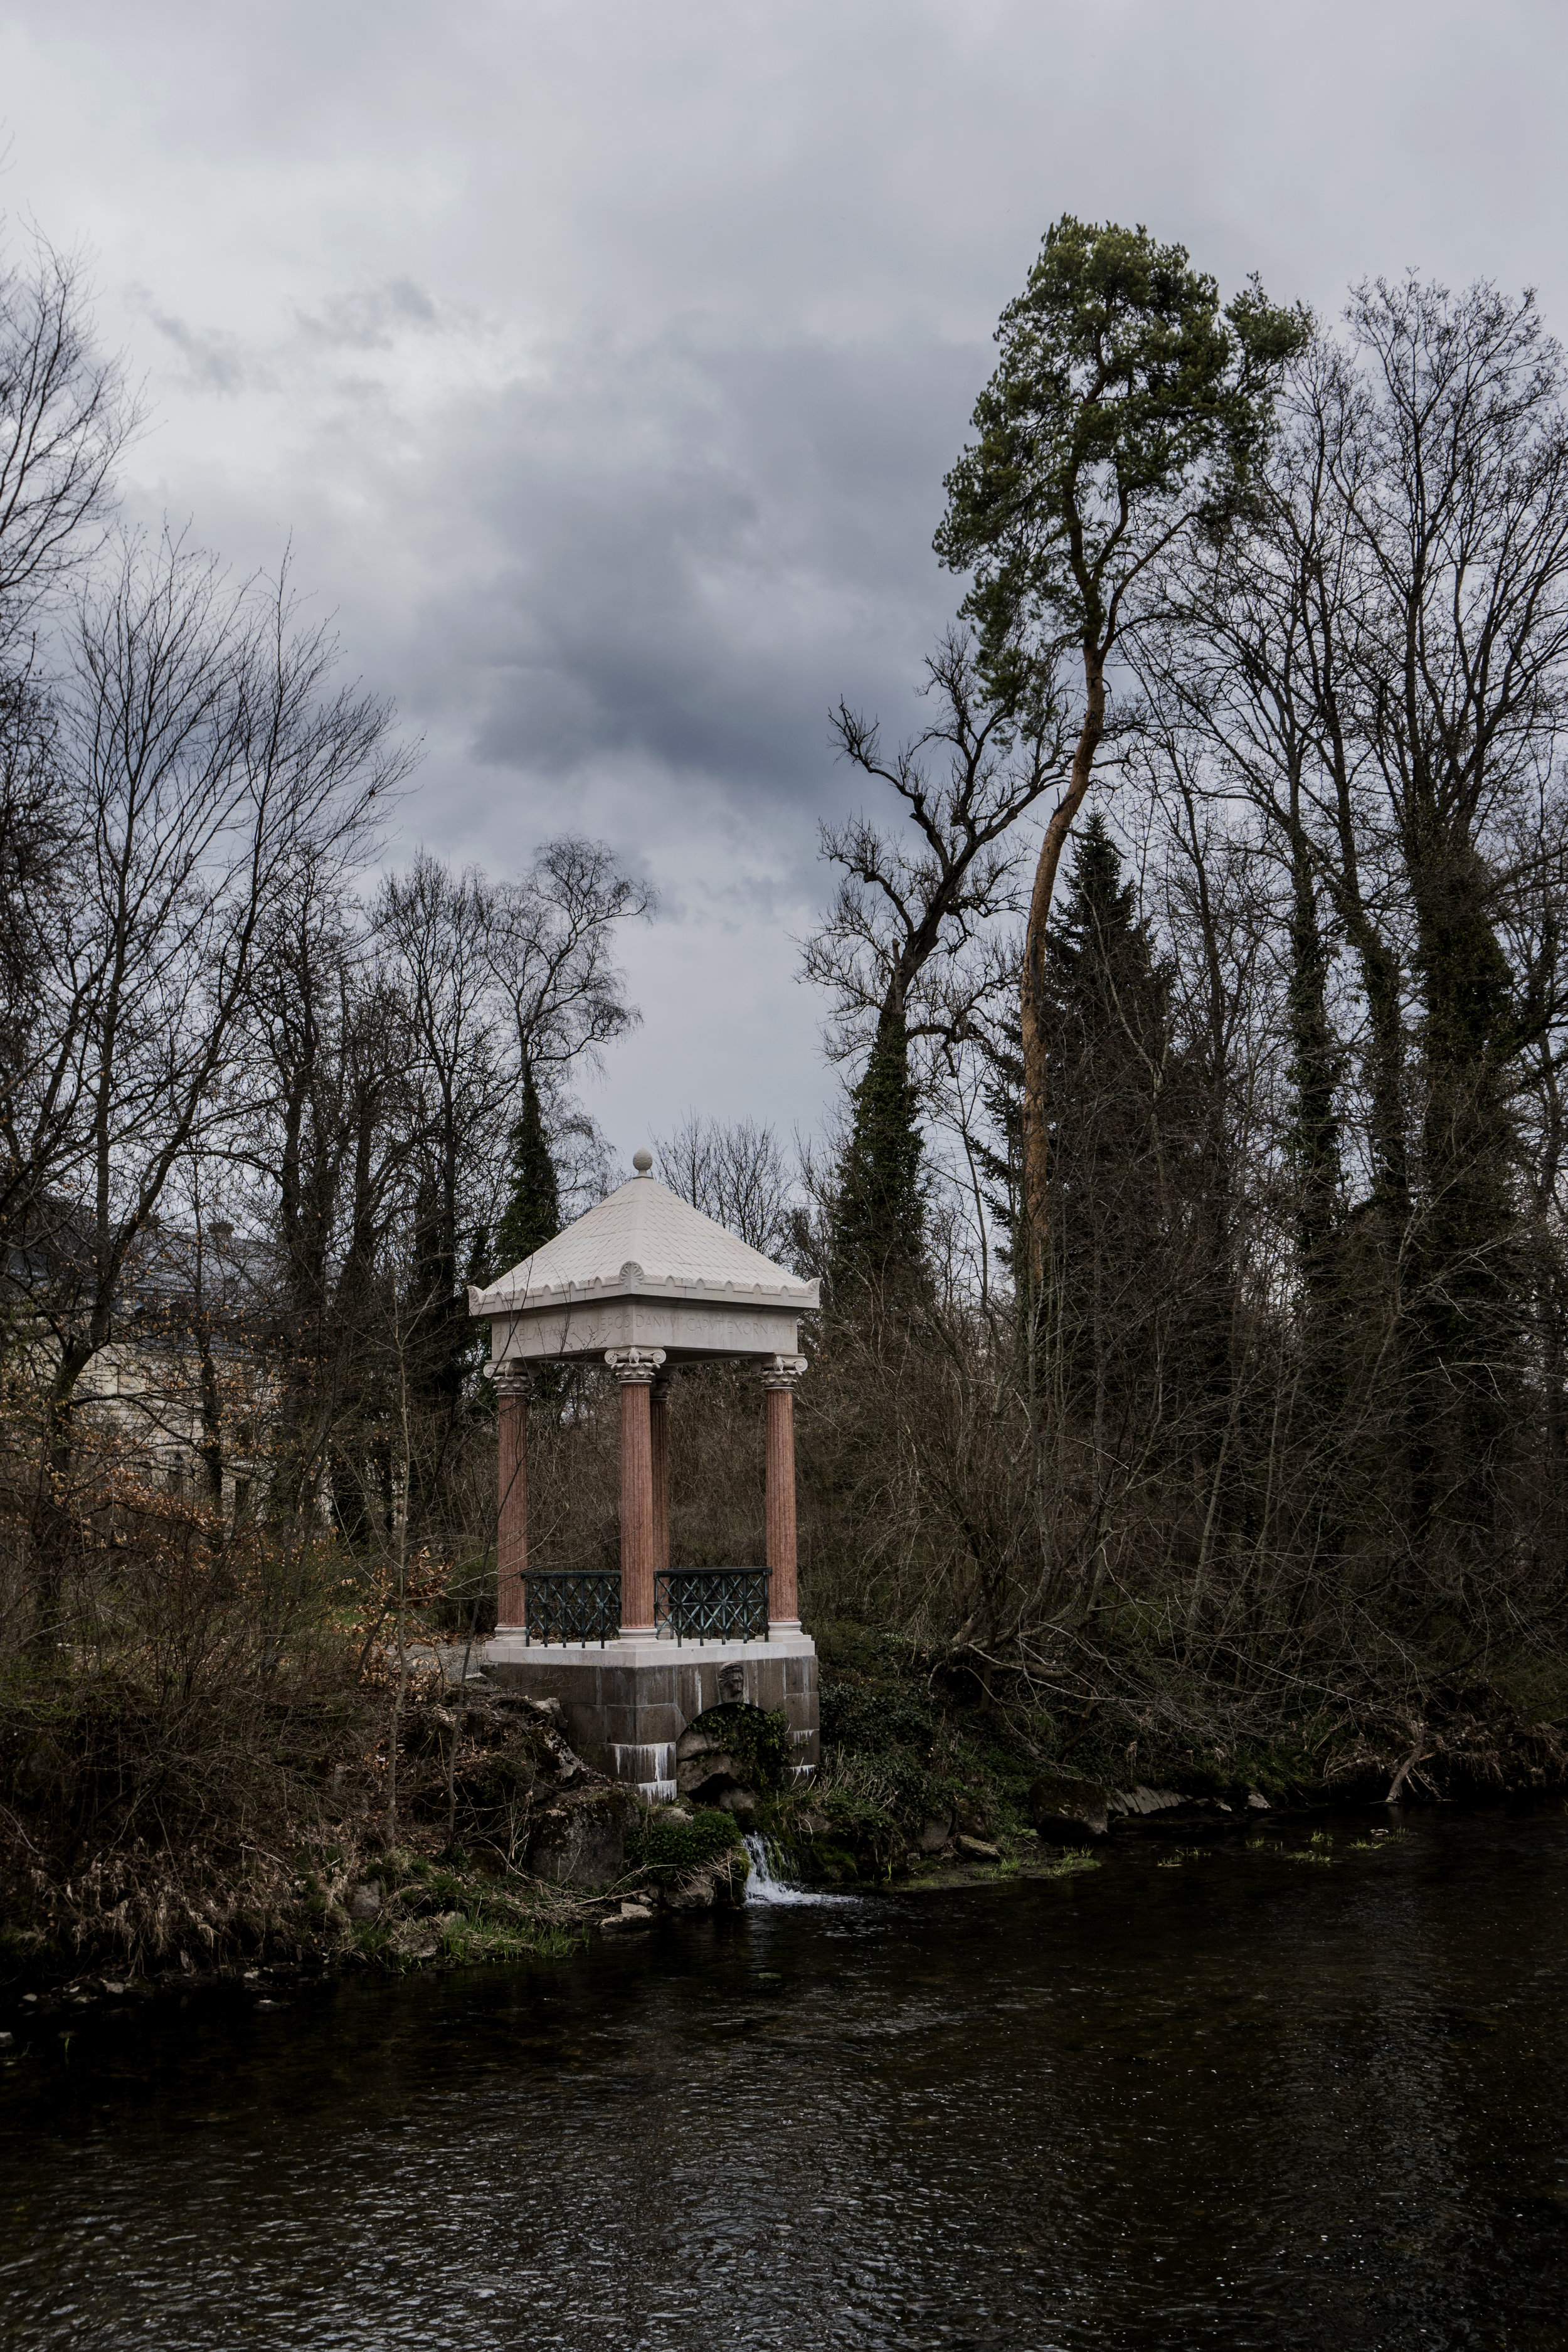 Monument dedicated to the mythical source of the Danube - built by order of Kaiser William II of Prussia at the end of 19th century.